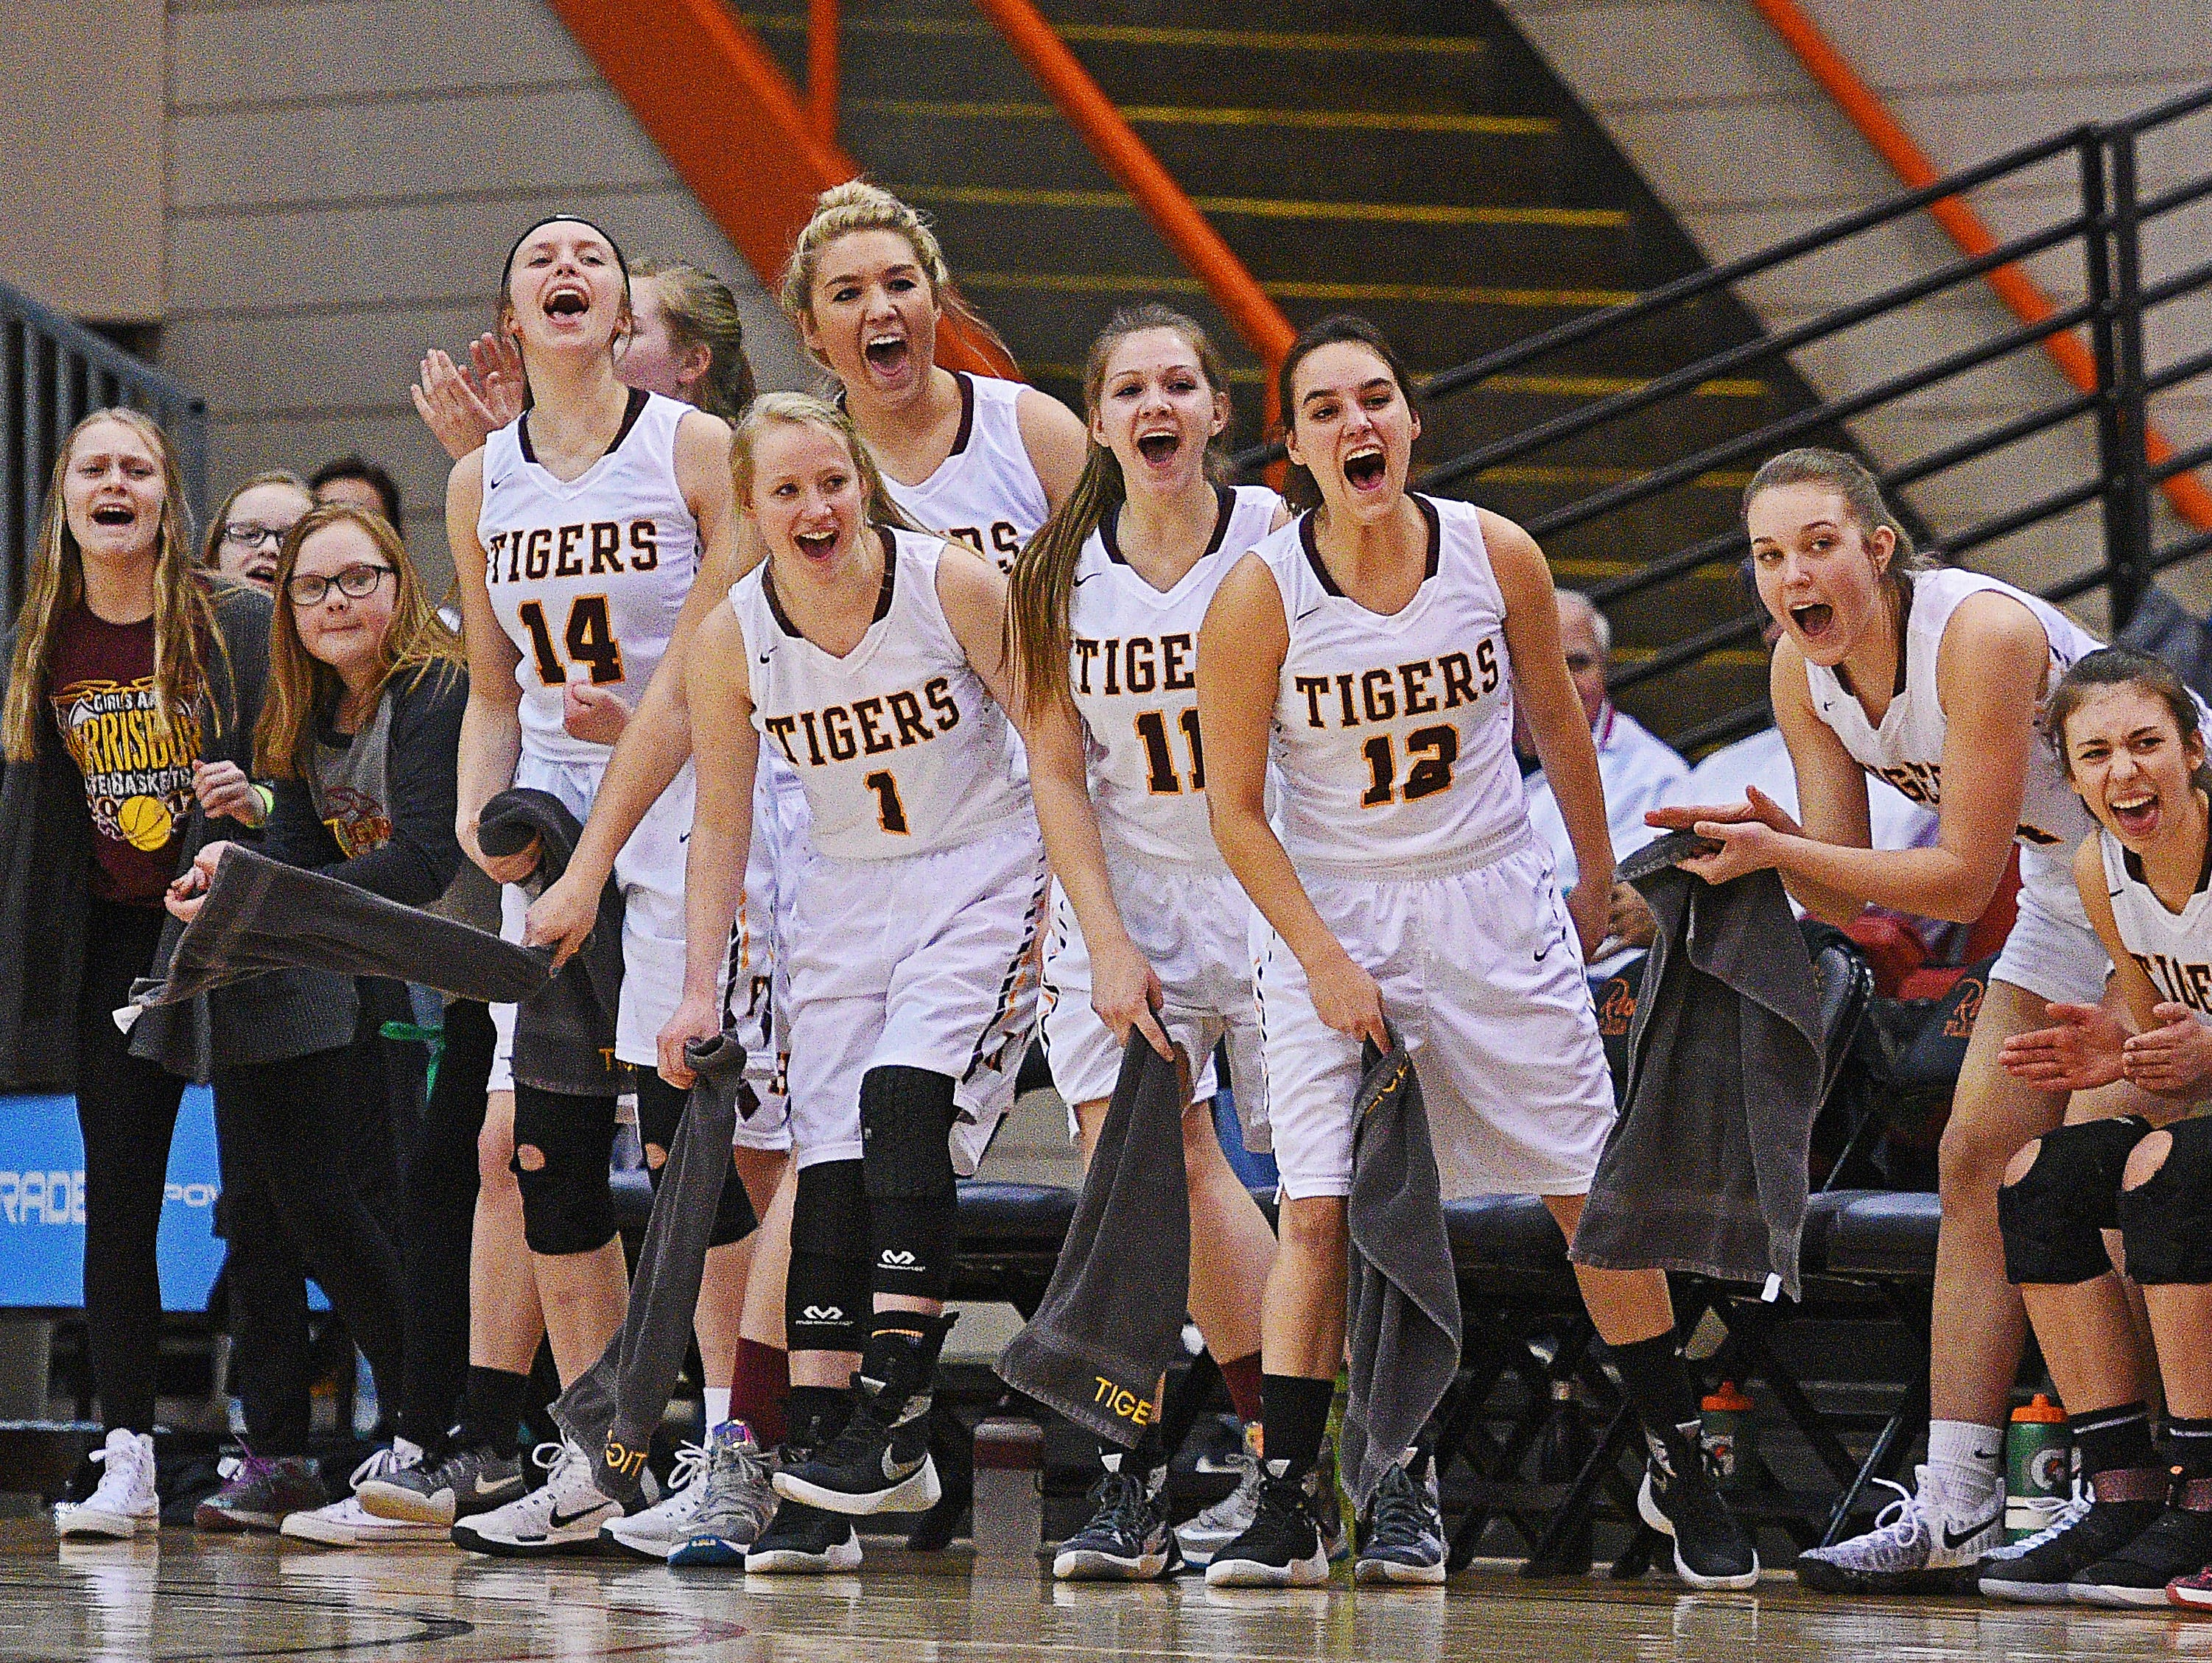 Harrisburg players react from the bench after a teammate scored during a 2017 SDHSAA Class AA State Girls Basketball semifinal game against Rapid City Central Friday, March 17, 2017, at Rushmore Plaza Civic Center in Rapid City. Harrisburg beat Rapid City Central 49-44, and will play in Saturday's final.